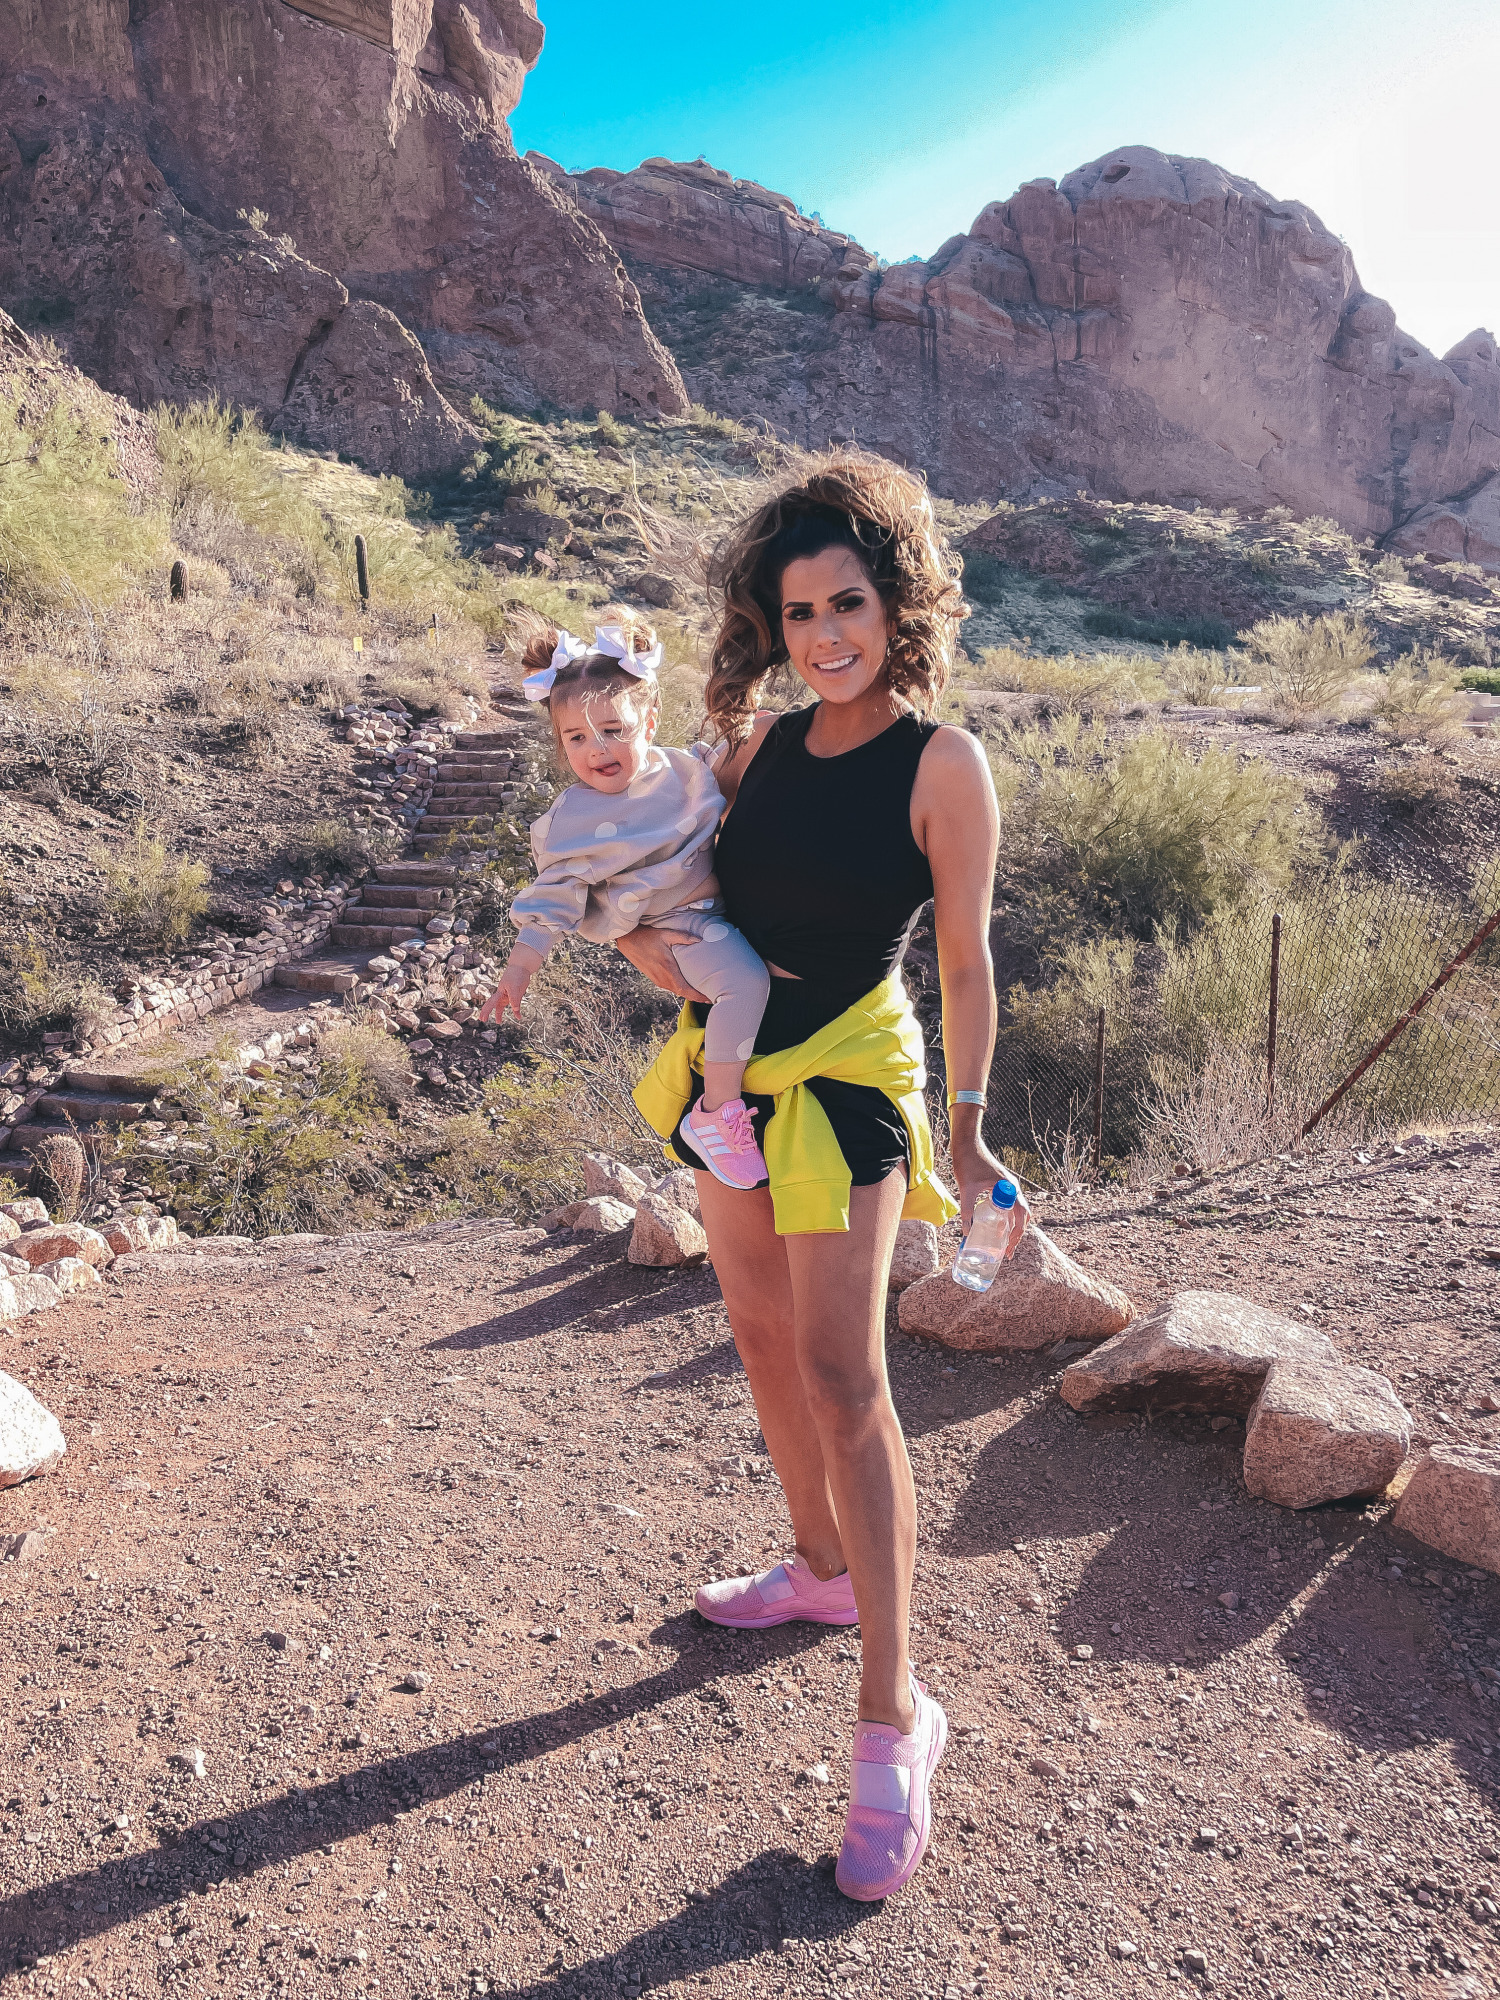 free people shorts, best workout gear spring 2021, camelback mountain, alo yoga top, emily gemma12 |Hiking Outfits by popular US fashion blog, The Sweetest Thing: image of Emily Gemma wearing a Alo yoga top, Nike half zipper pullover sweatshirt, Free People shorts, APL sneakers and Amazon sunglasses while holding her daughter Sophie who's wearing a grey and white polka dot lounge set, sneakers, and matching white hair bows.